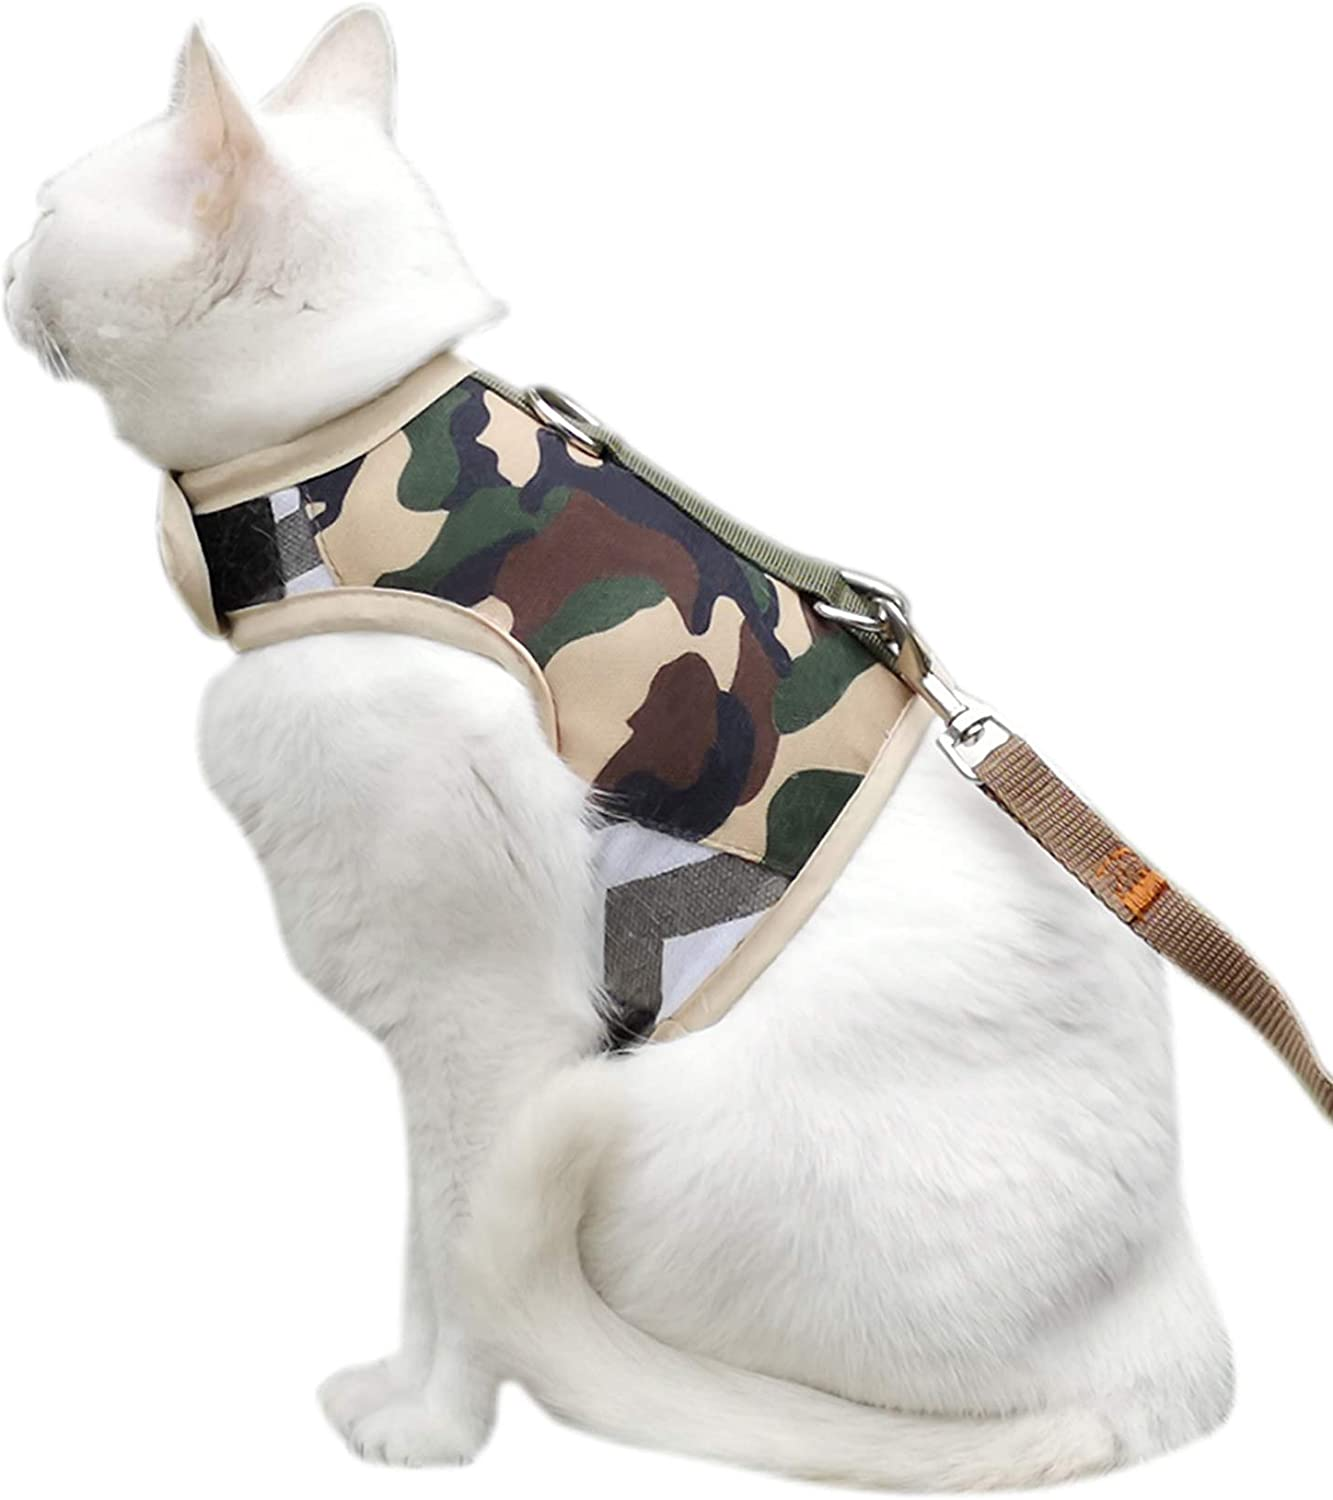 Escape Proof Cat Harness with Leash, Adjustable Cat Walking Jackets, Padded Cat Vest